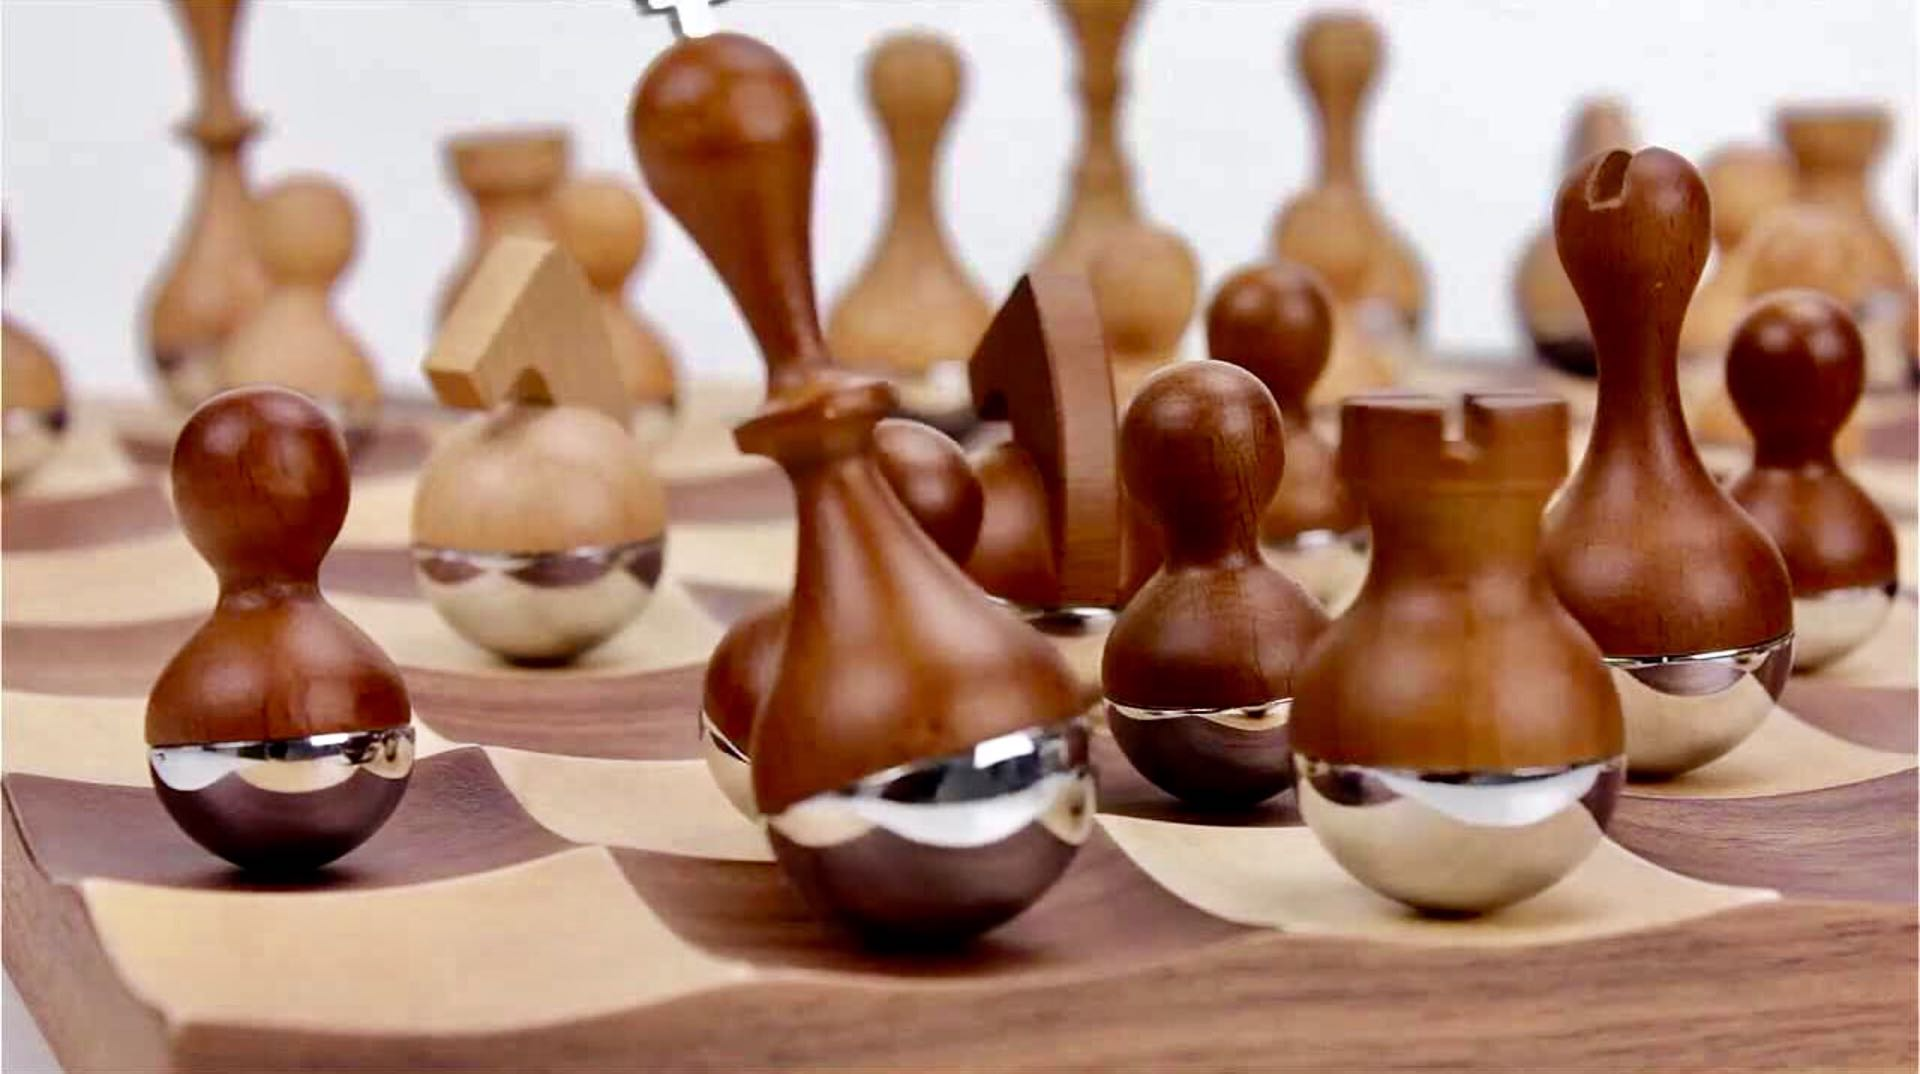 Wobble chess set by umbra tools and toys - Umbra chess set ...